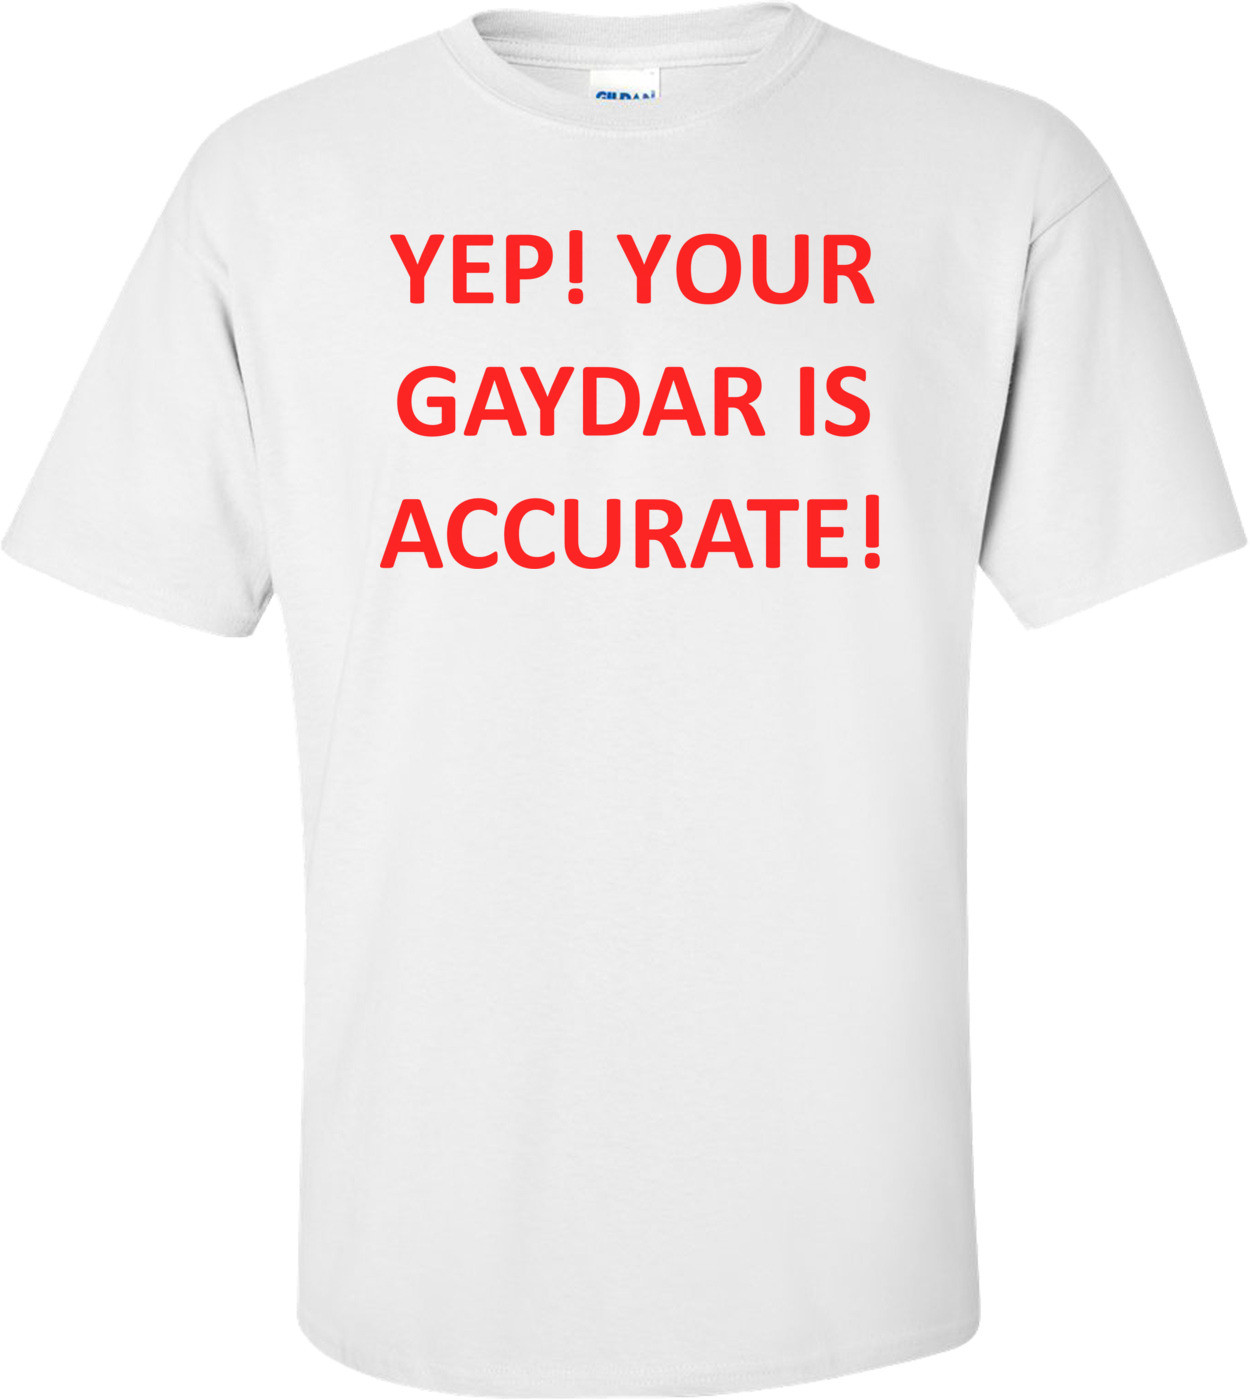 YEP! YOUR GAYDAR IS ACCURATE! Shirt